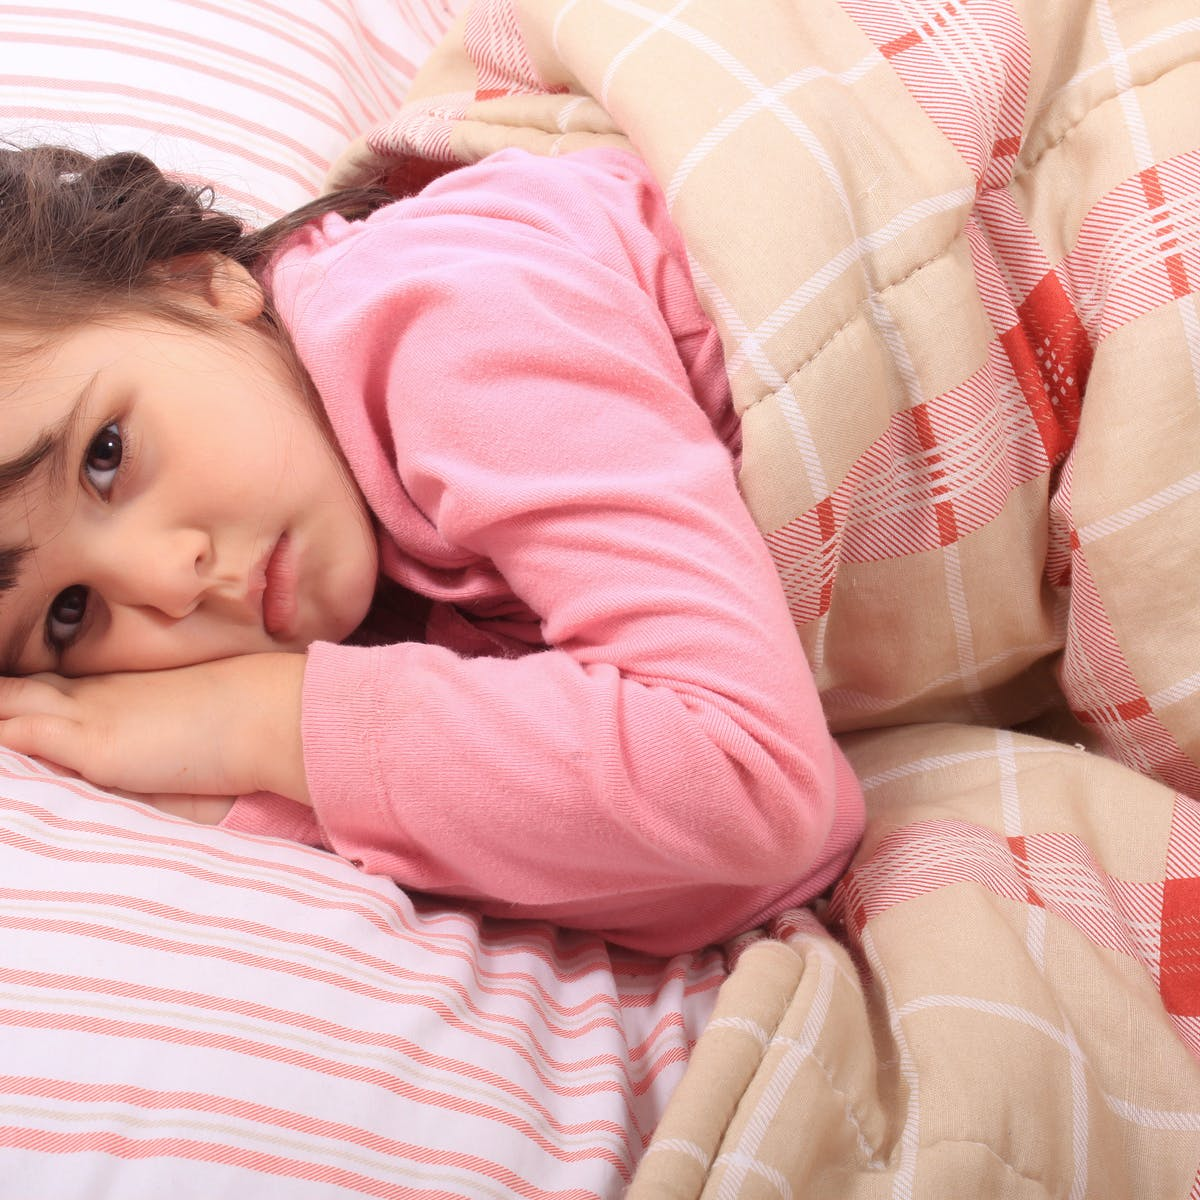 Childrens Sleep Problems Linked To >> Sleep Problems That Persist Could Affect Children S Emotional